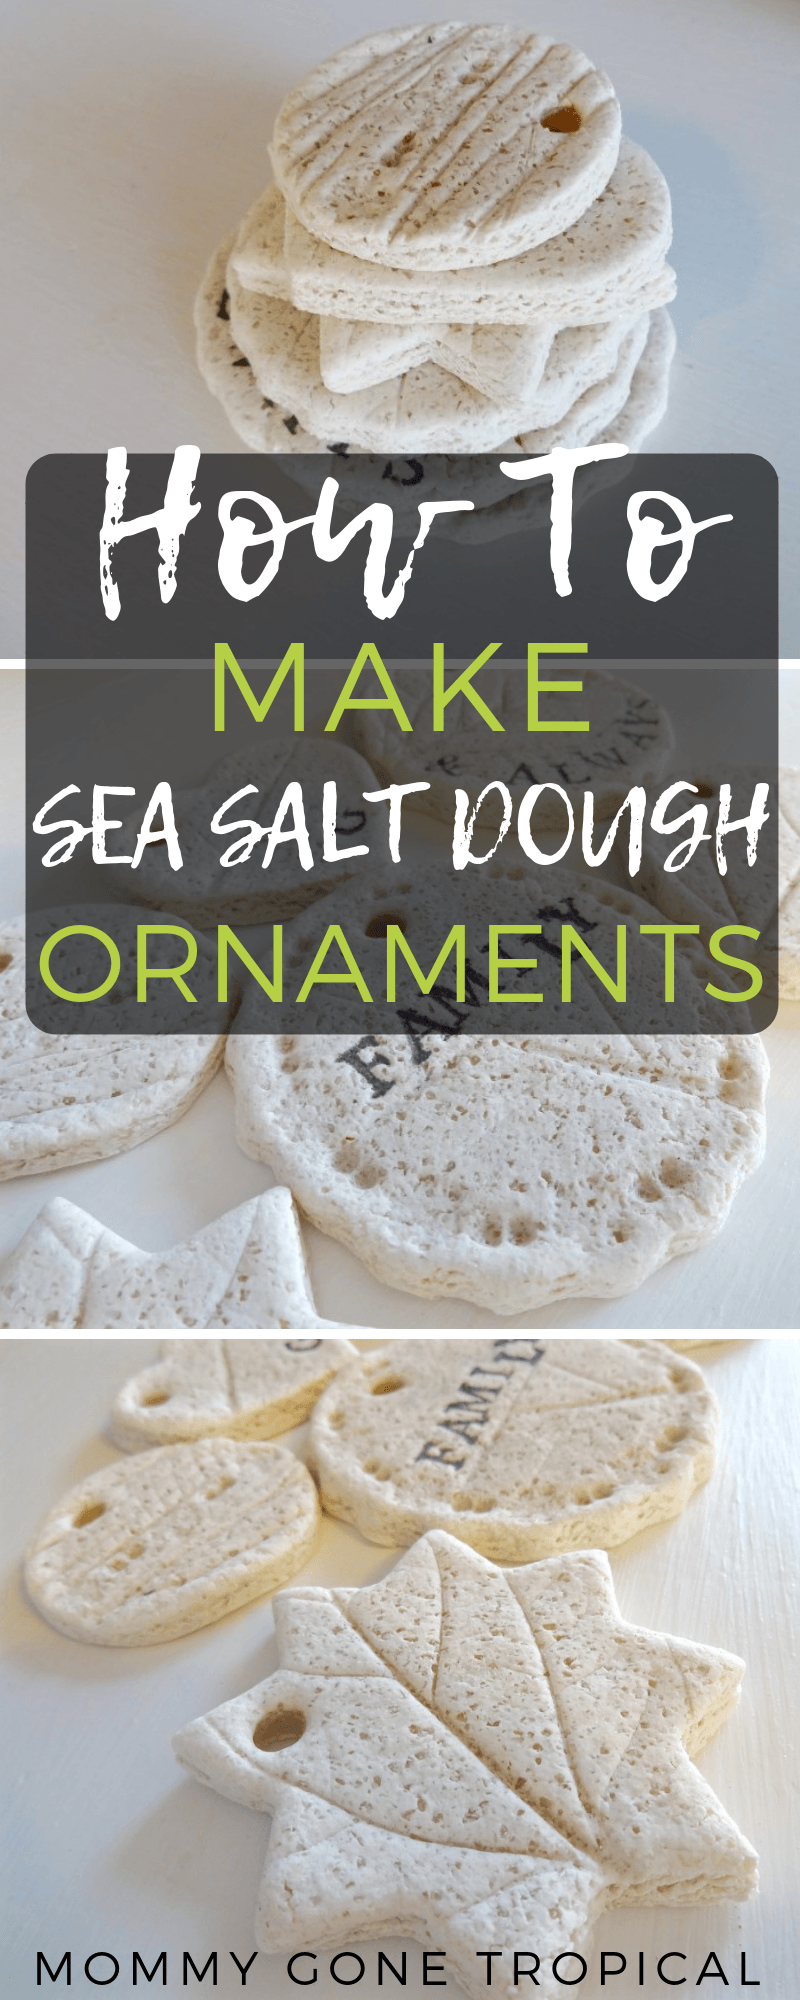 How to make sea salt dough ornaments to hang up on your Christmas tree. #seasaltdough #saltdough #saltdoughornaments | mommygonetropical.com